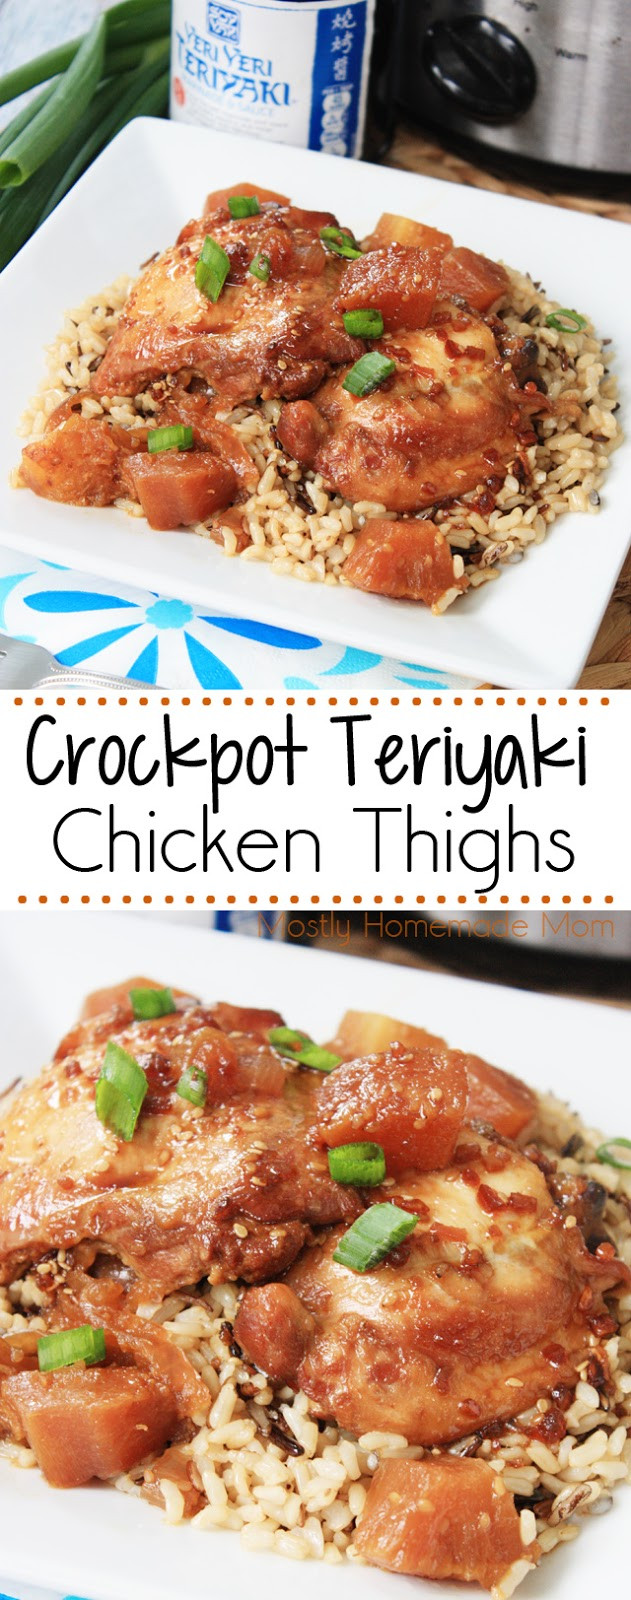 Slow Cooker Teriyaki Chicken Thighs  Crockpot Teriyaki Chicken Thighs